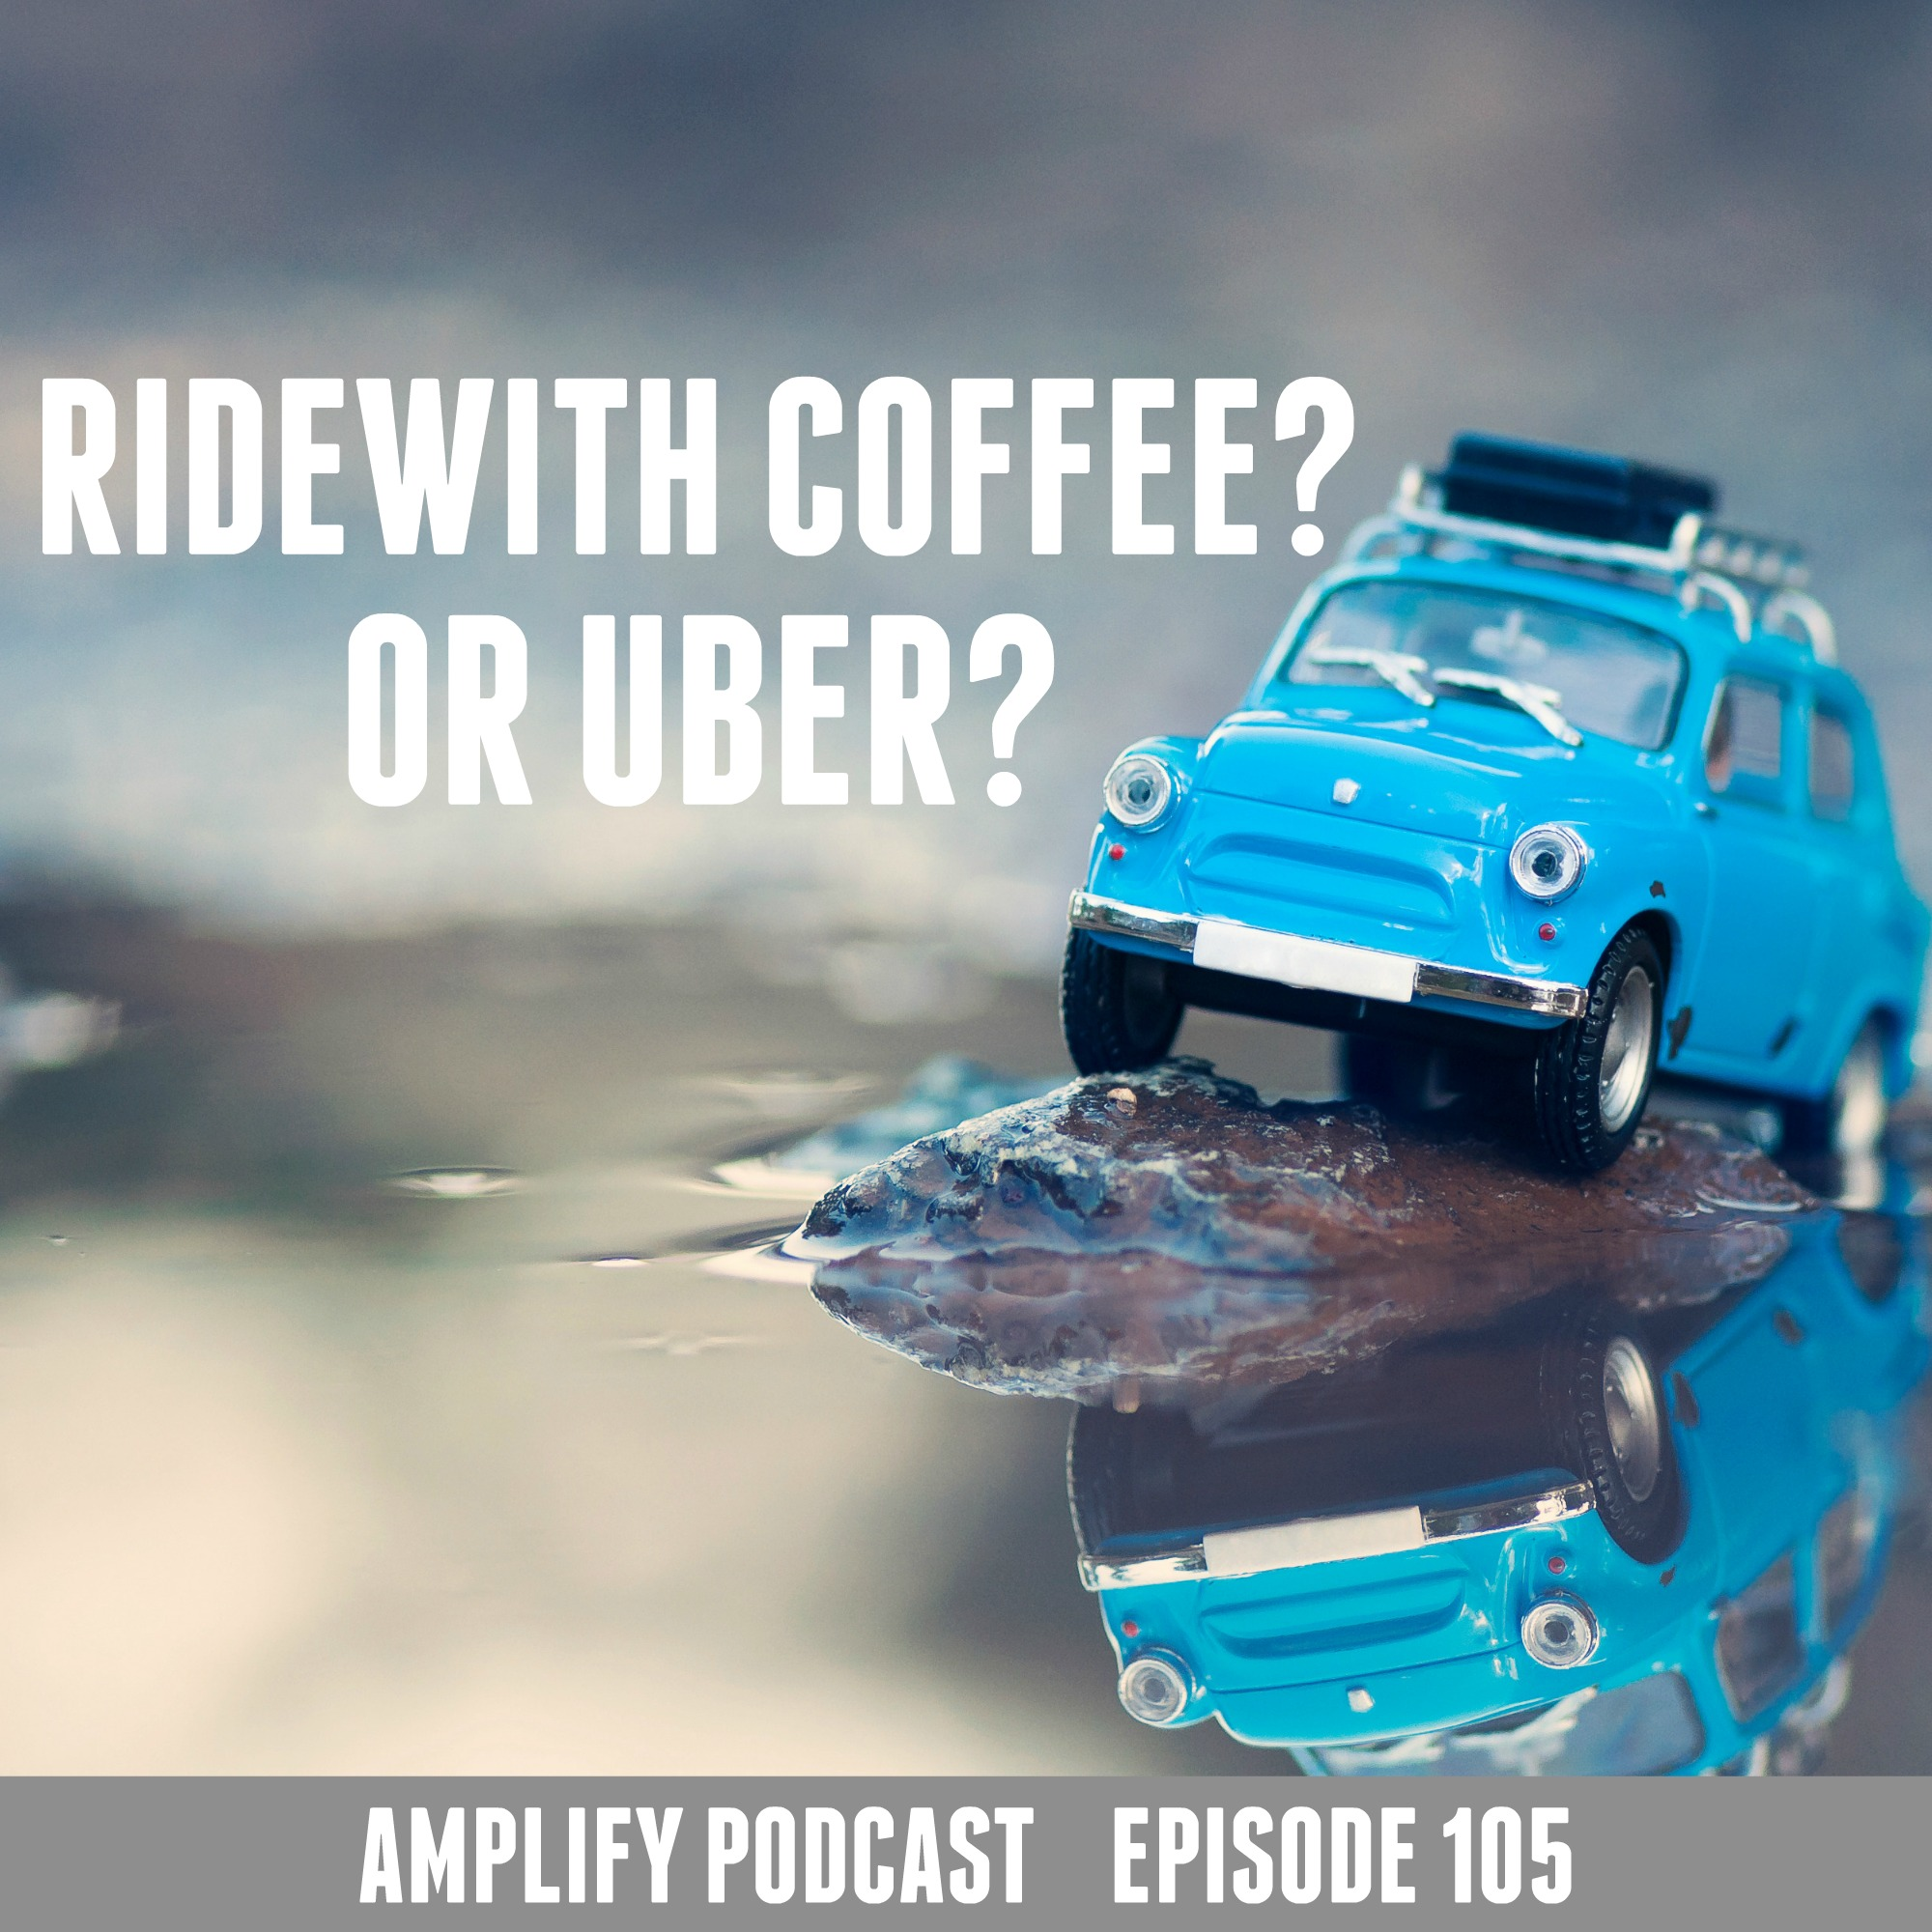 Ridewith Coffee? Or Uber?